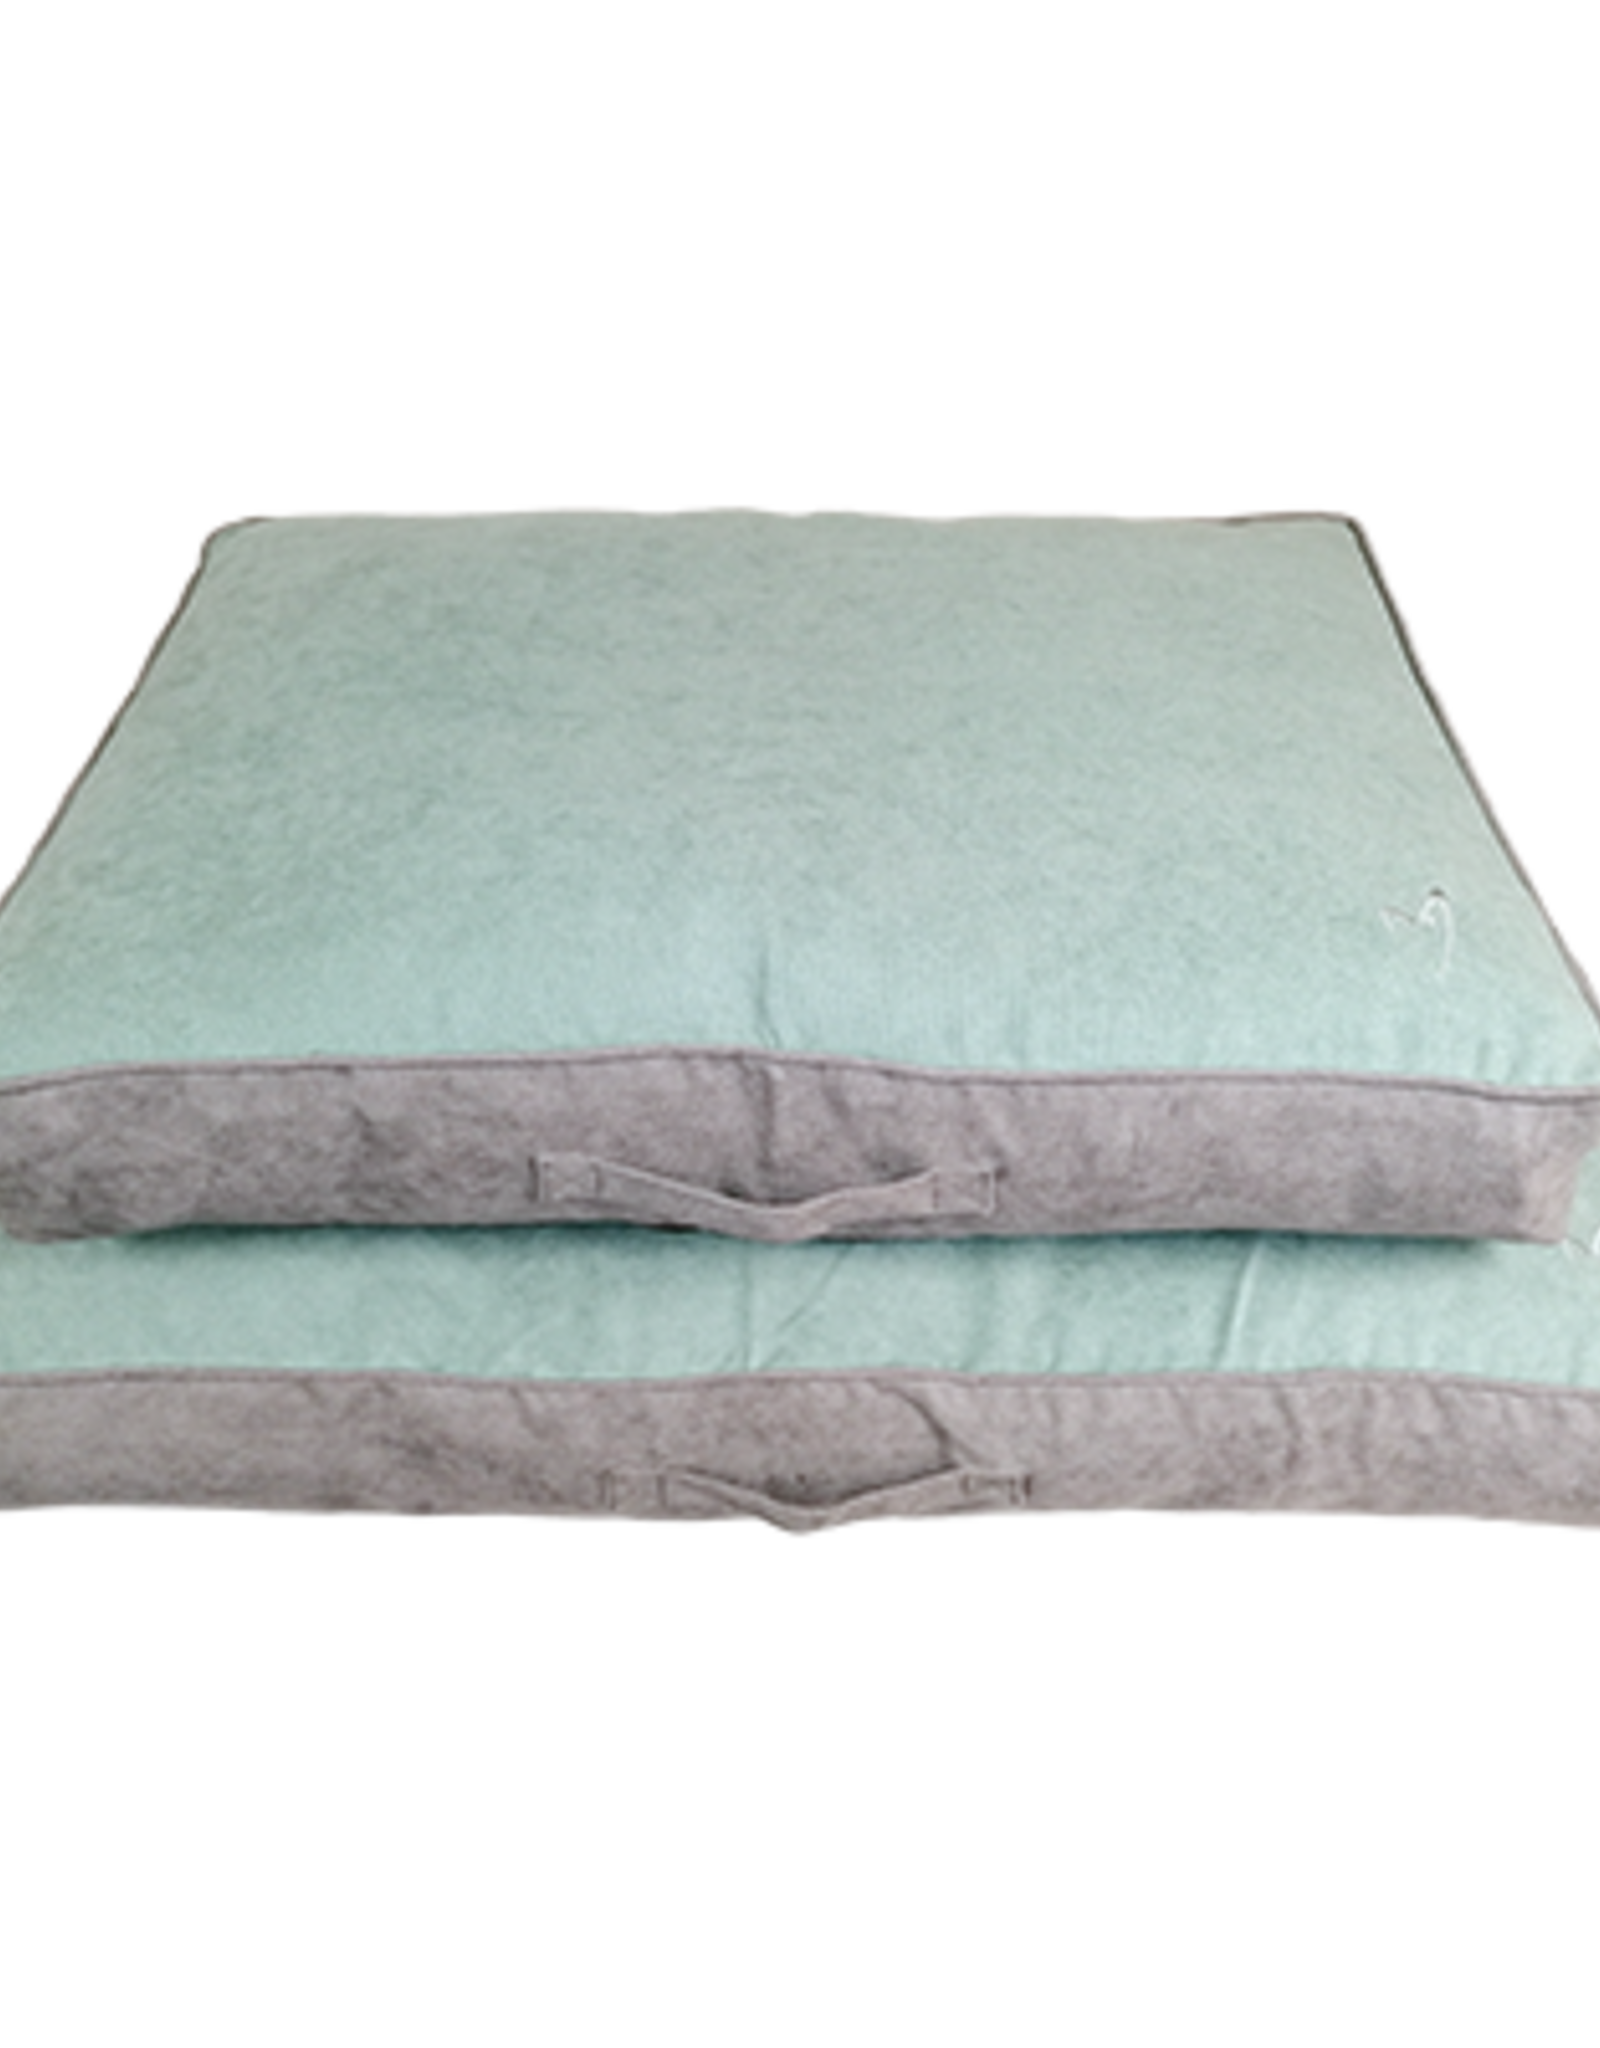 Gor Pets Camden Sleeper Dog Bed with Removable Cover in Mint